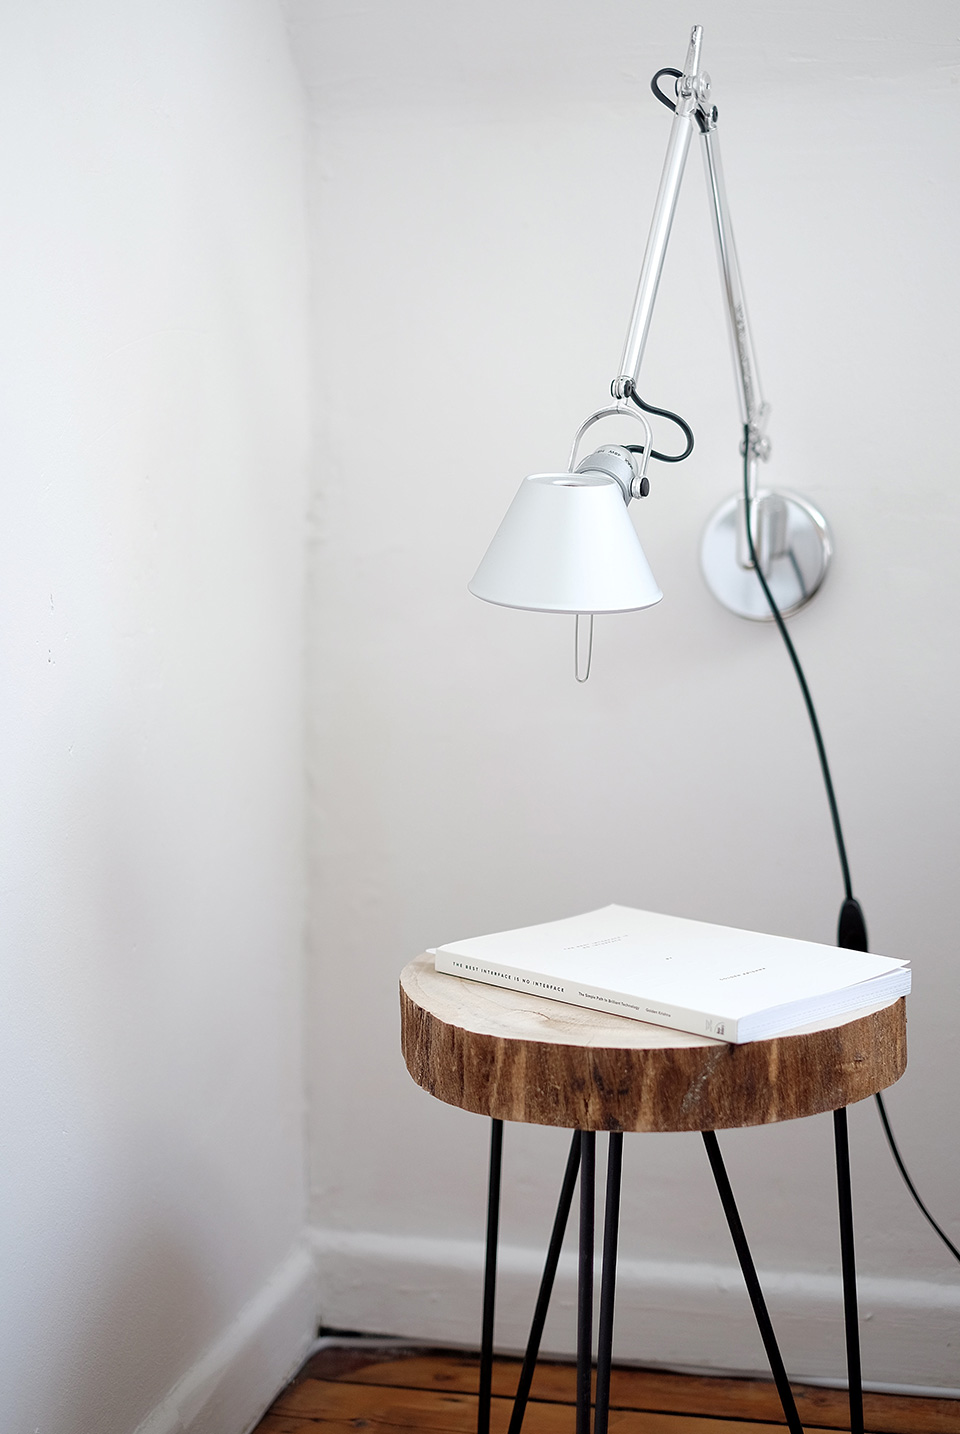 home-portfolio-01.jpg A stool with a book on top